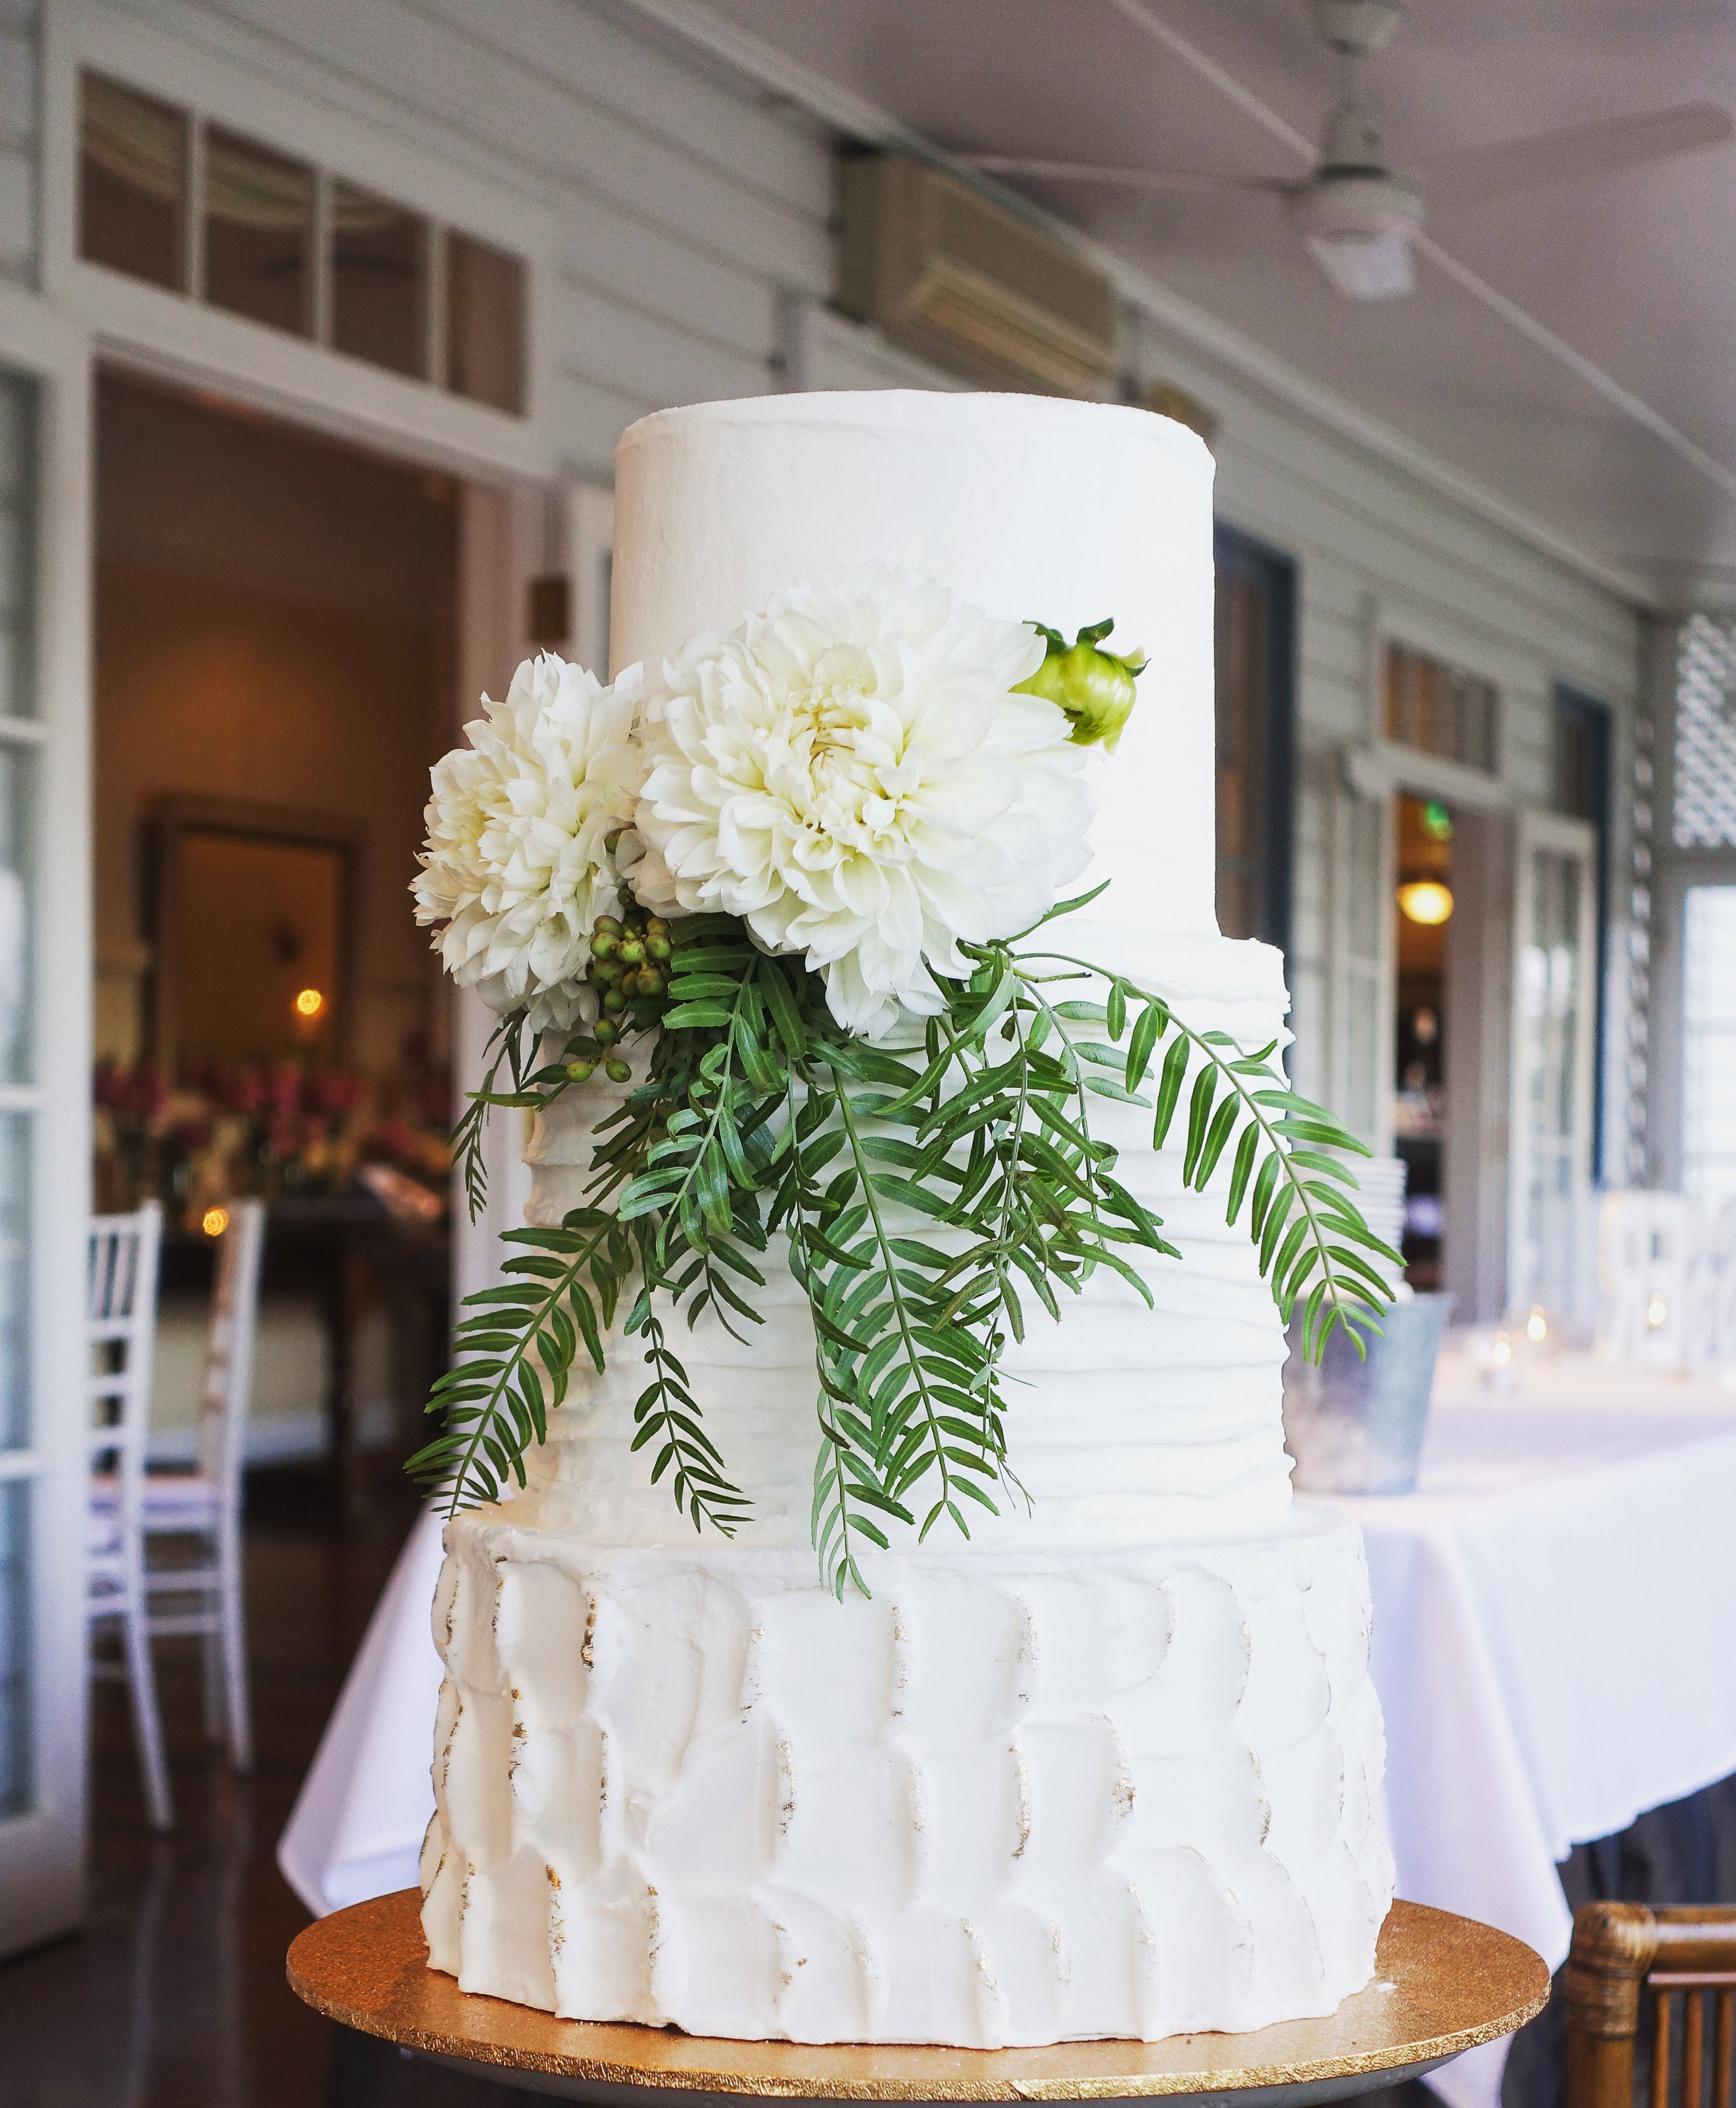 Vanilla Pod Specialty Cake Kitchen Textured Frosted Wedding Cake Hillstone St Lucia Brisbane.jpg